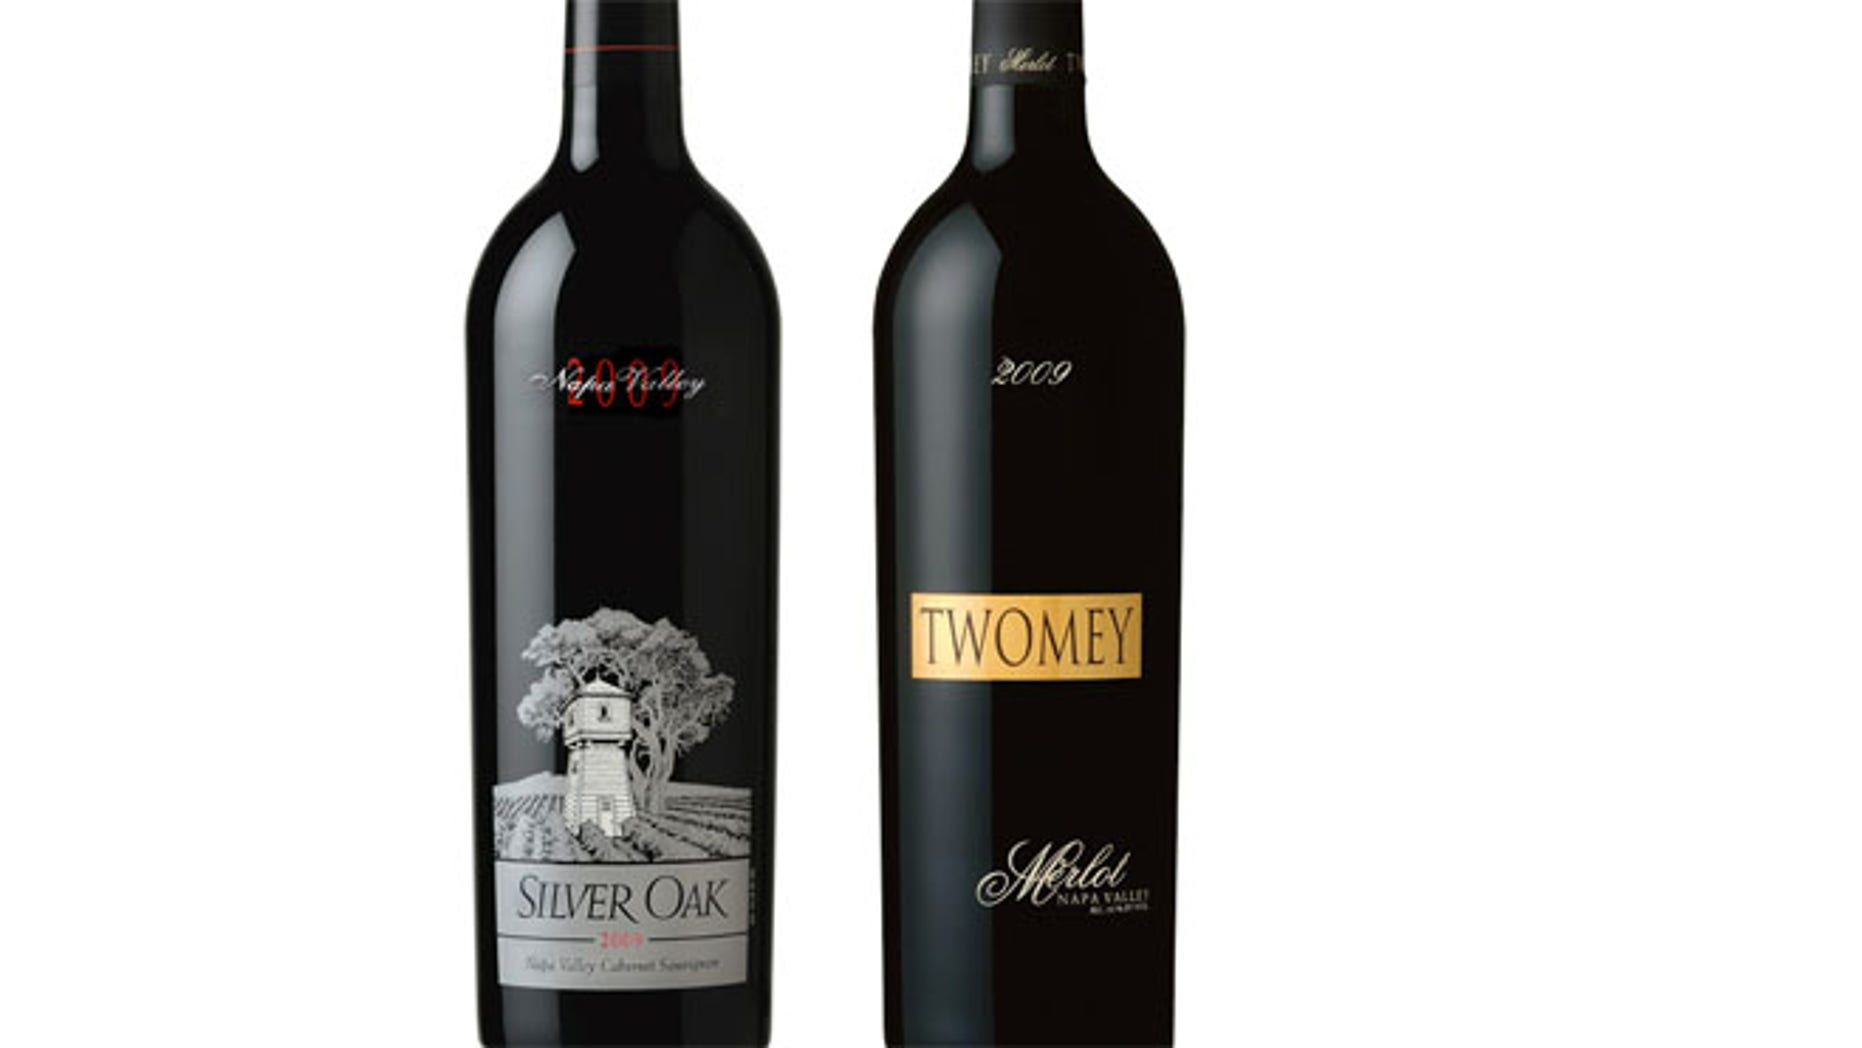 Twomey sells upscale merlot, sauivgnon blanc and pinot noir.